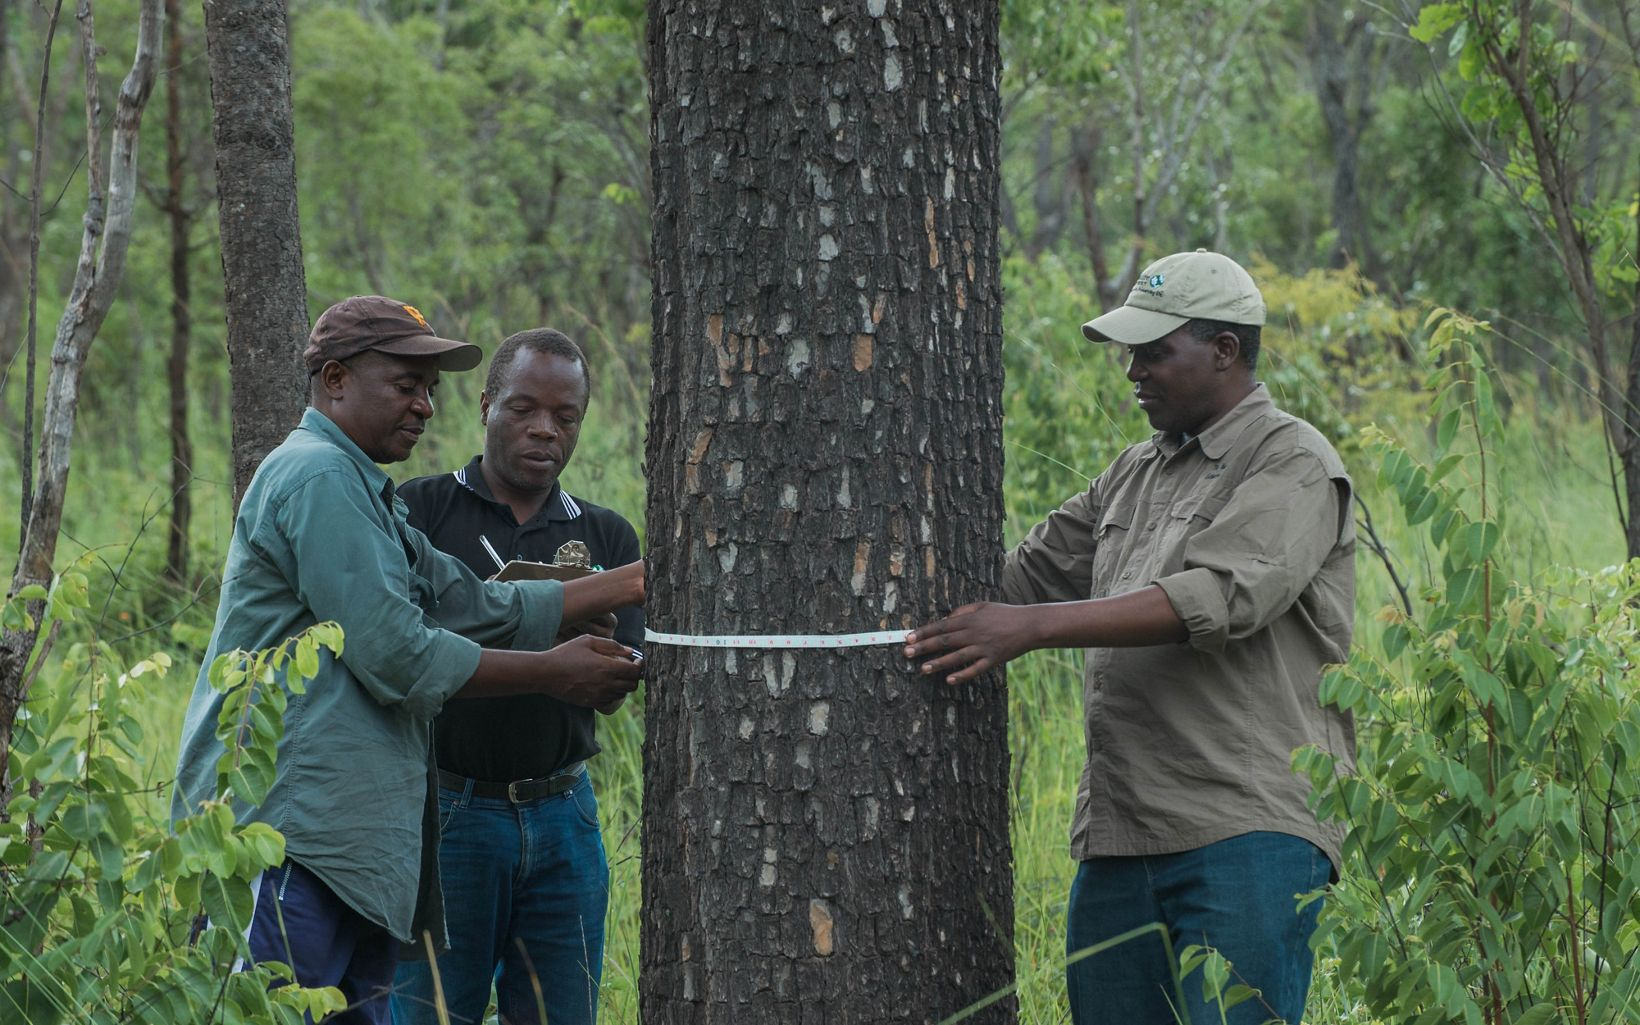 men measure a tree trunk